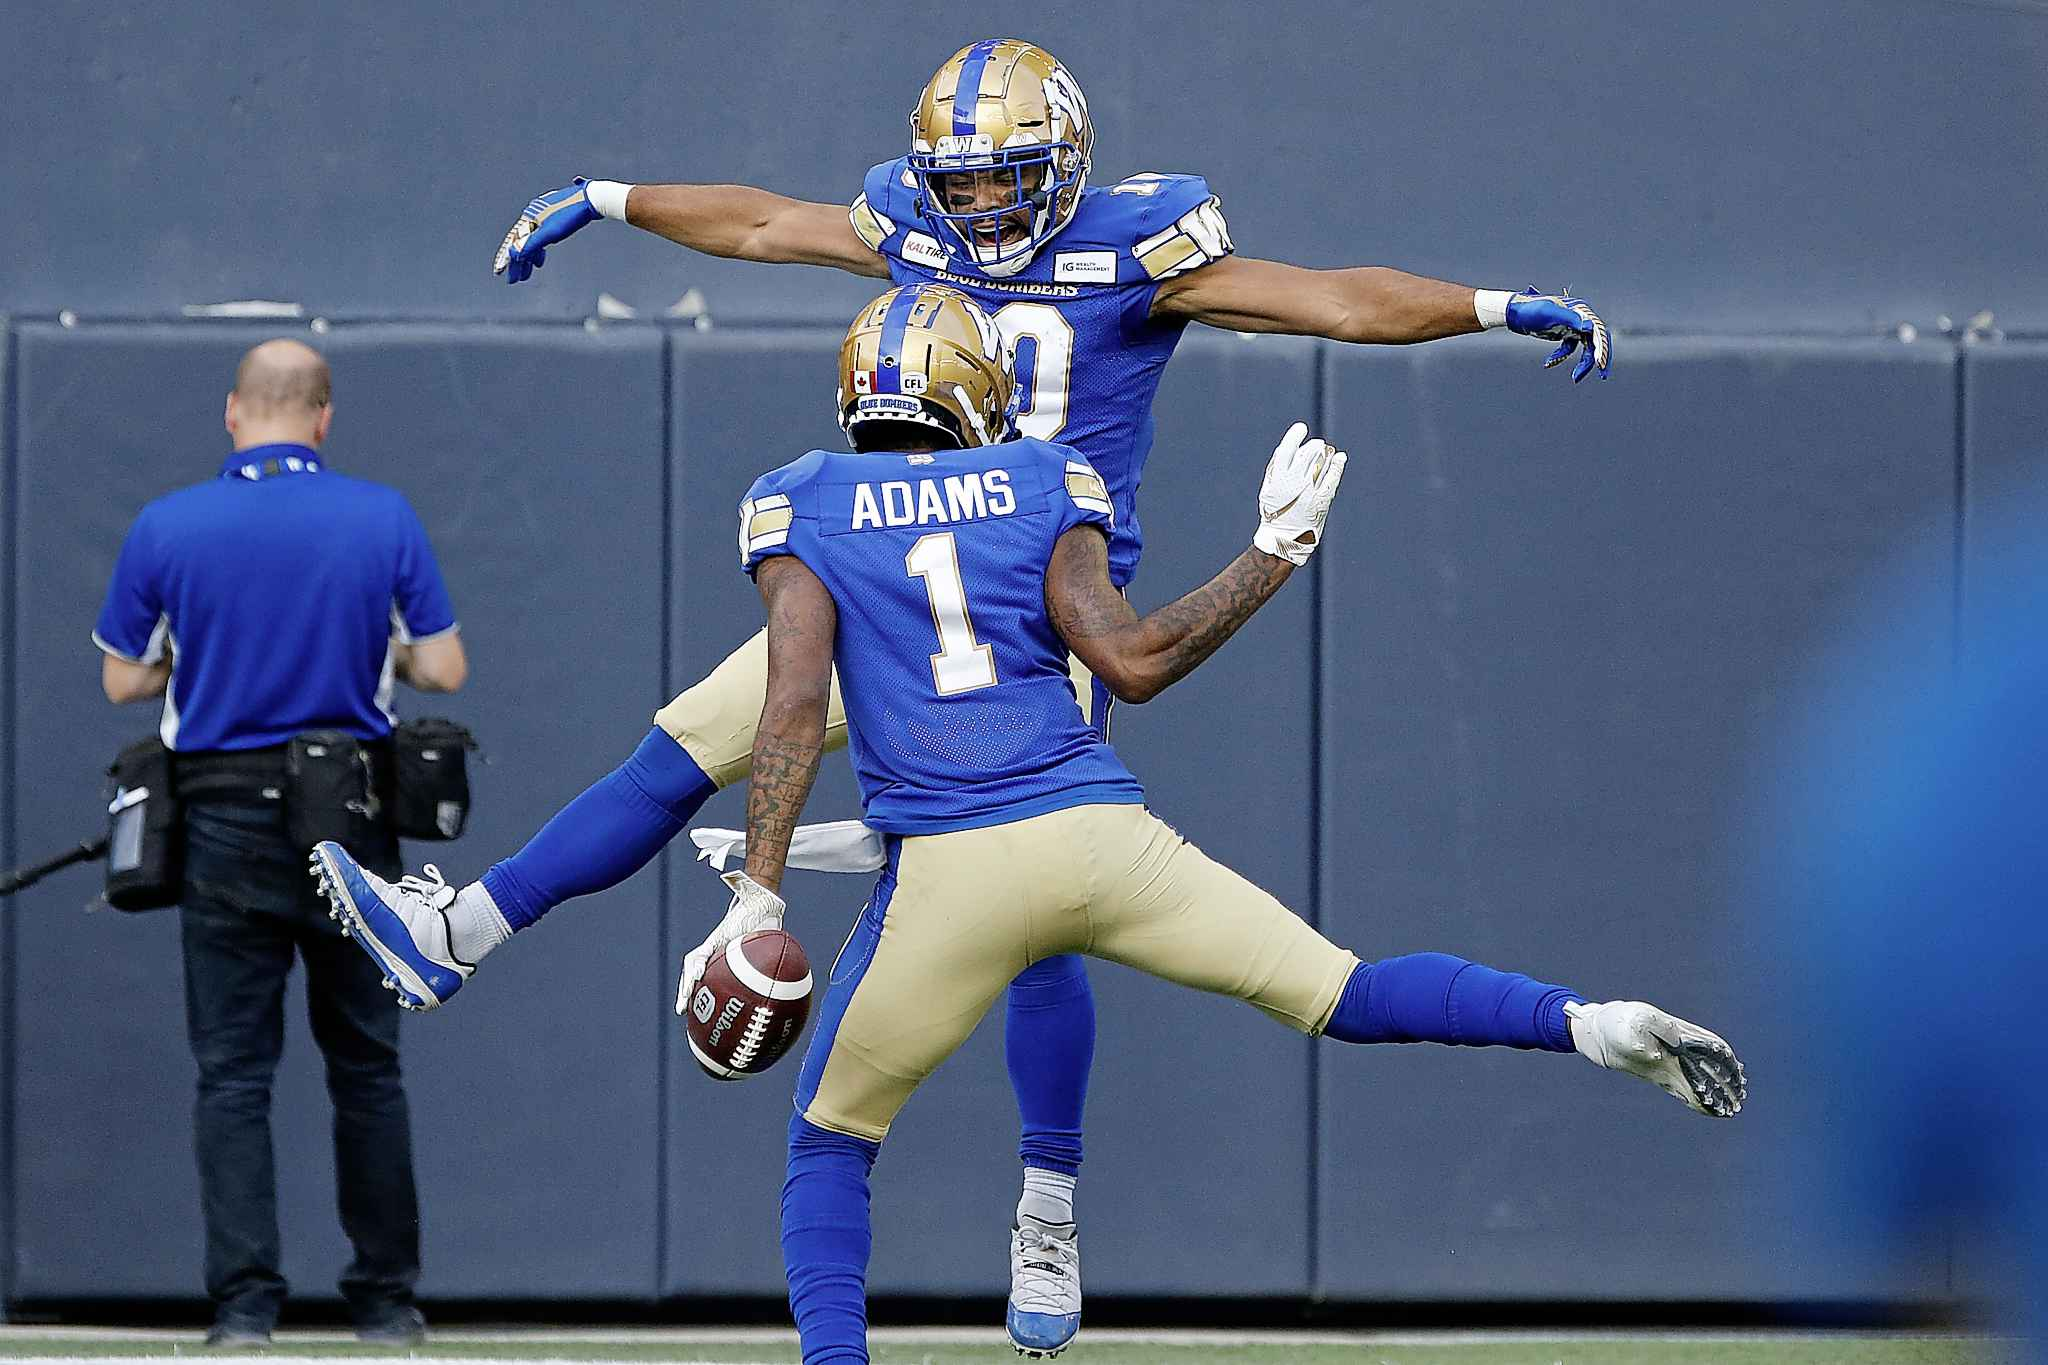 Blue Bombers' Darvin Adams and Nic Demski celebrate Adams' touchdown during the first half against the Toronto Argonauts, in Winnipeg, Friday.